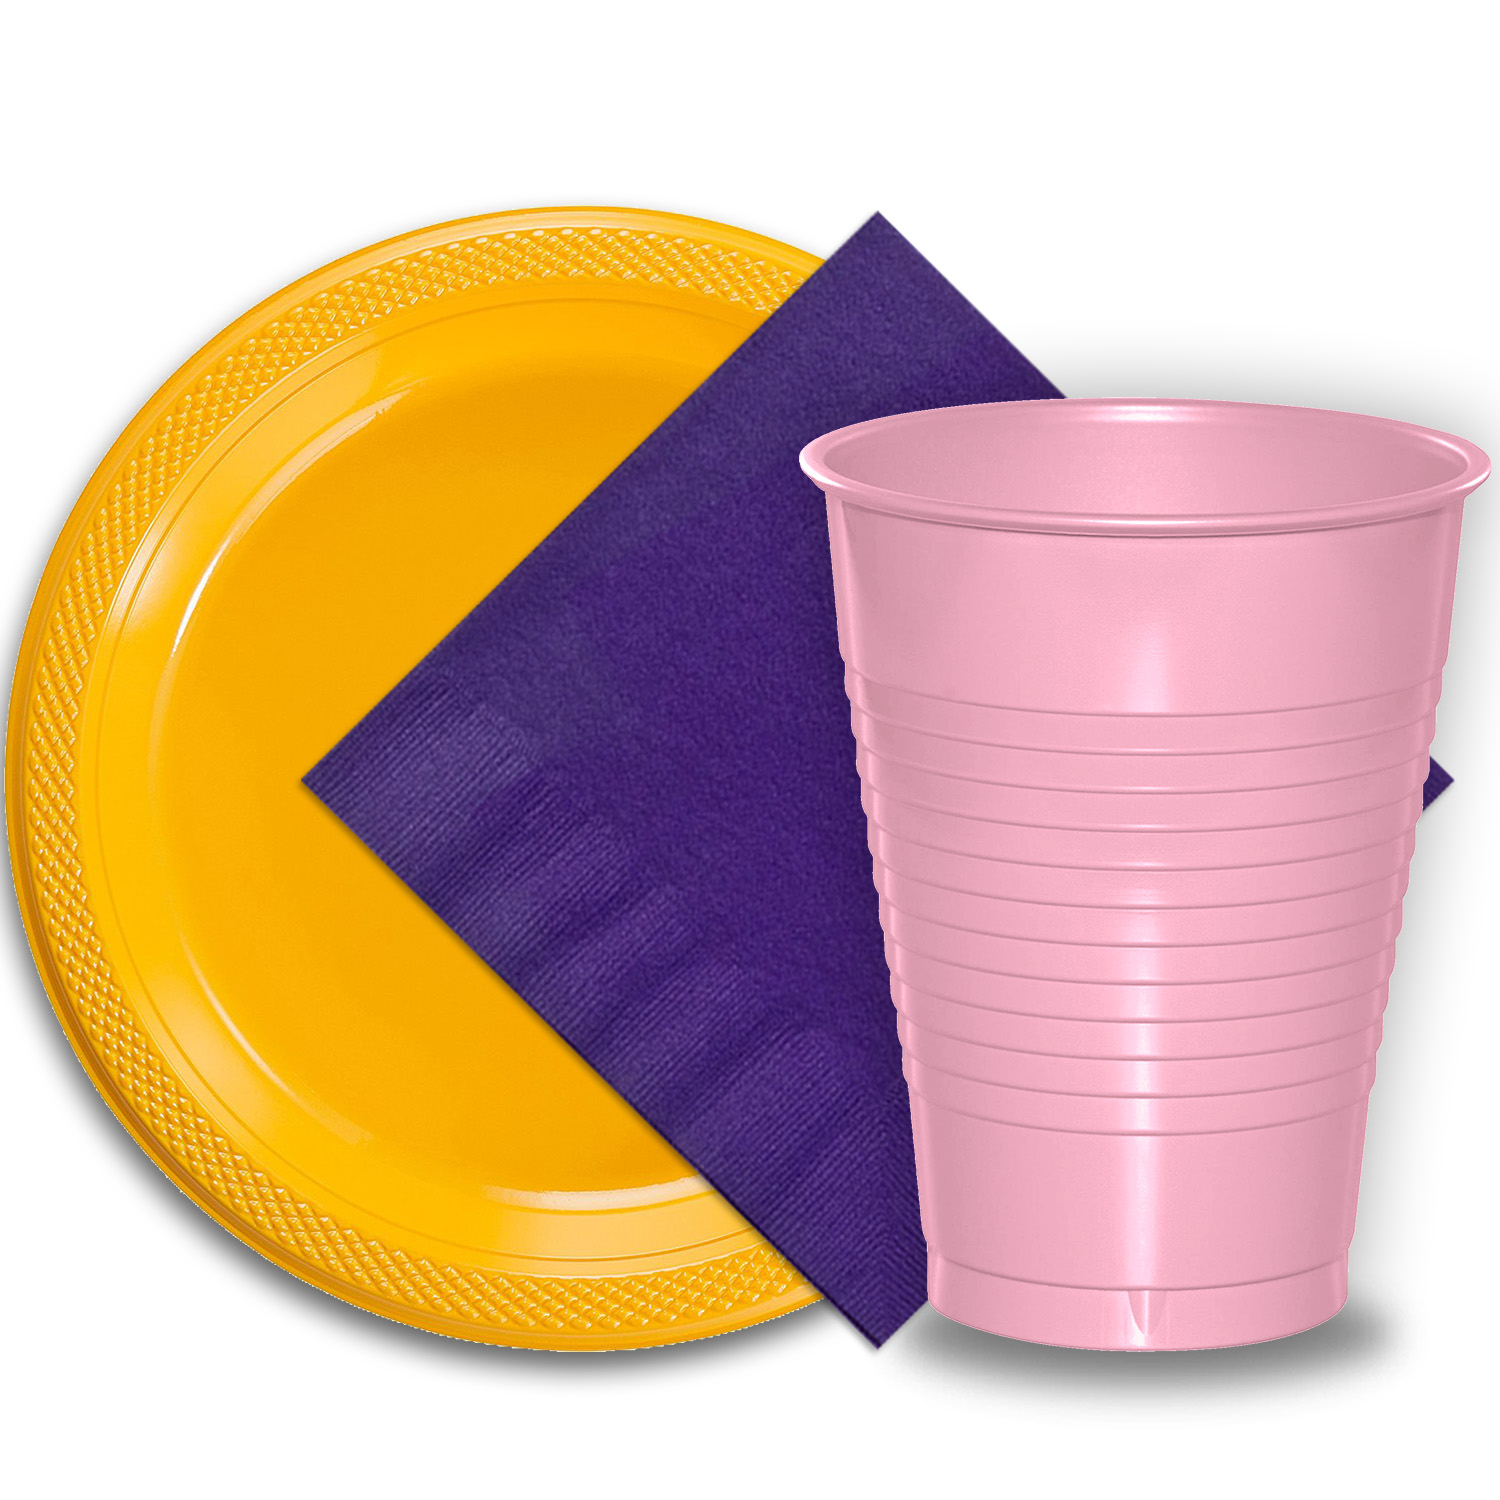 """50 Yellow Plastic Plates (9""""), 50 Pink Plastic Cups (12 oz.), and 50 Purple Paper Napkins, Dazzelling Colored Disposable Party Supplies Tableware Set for Fifty Guests."""